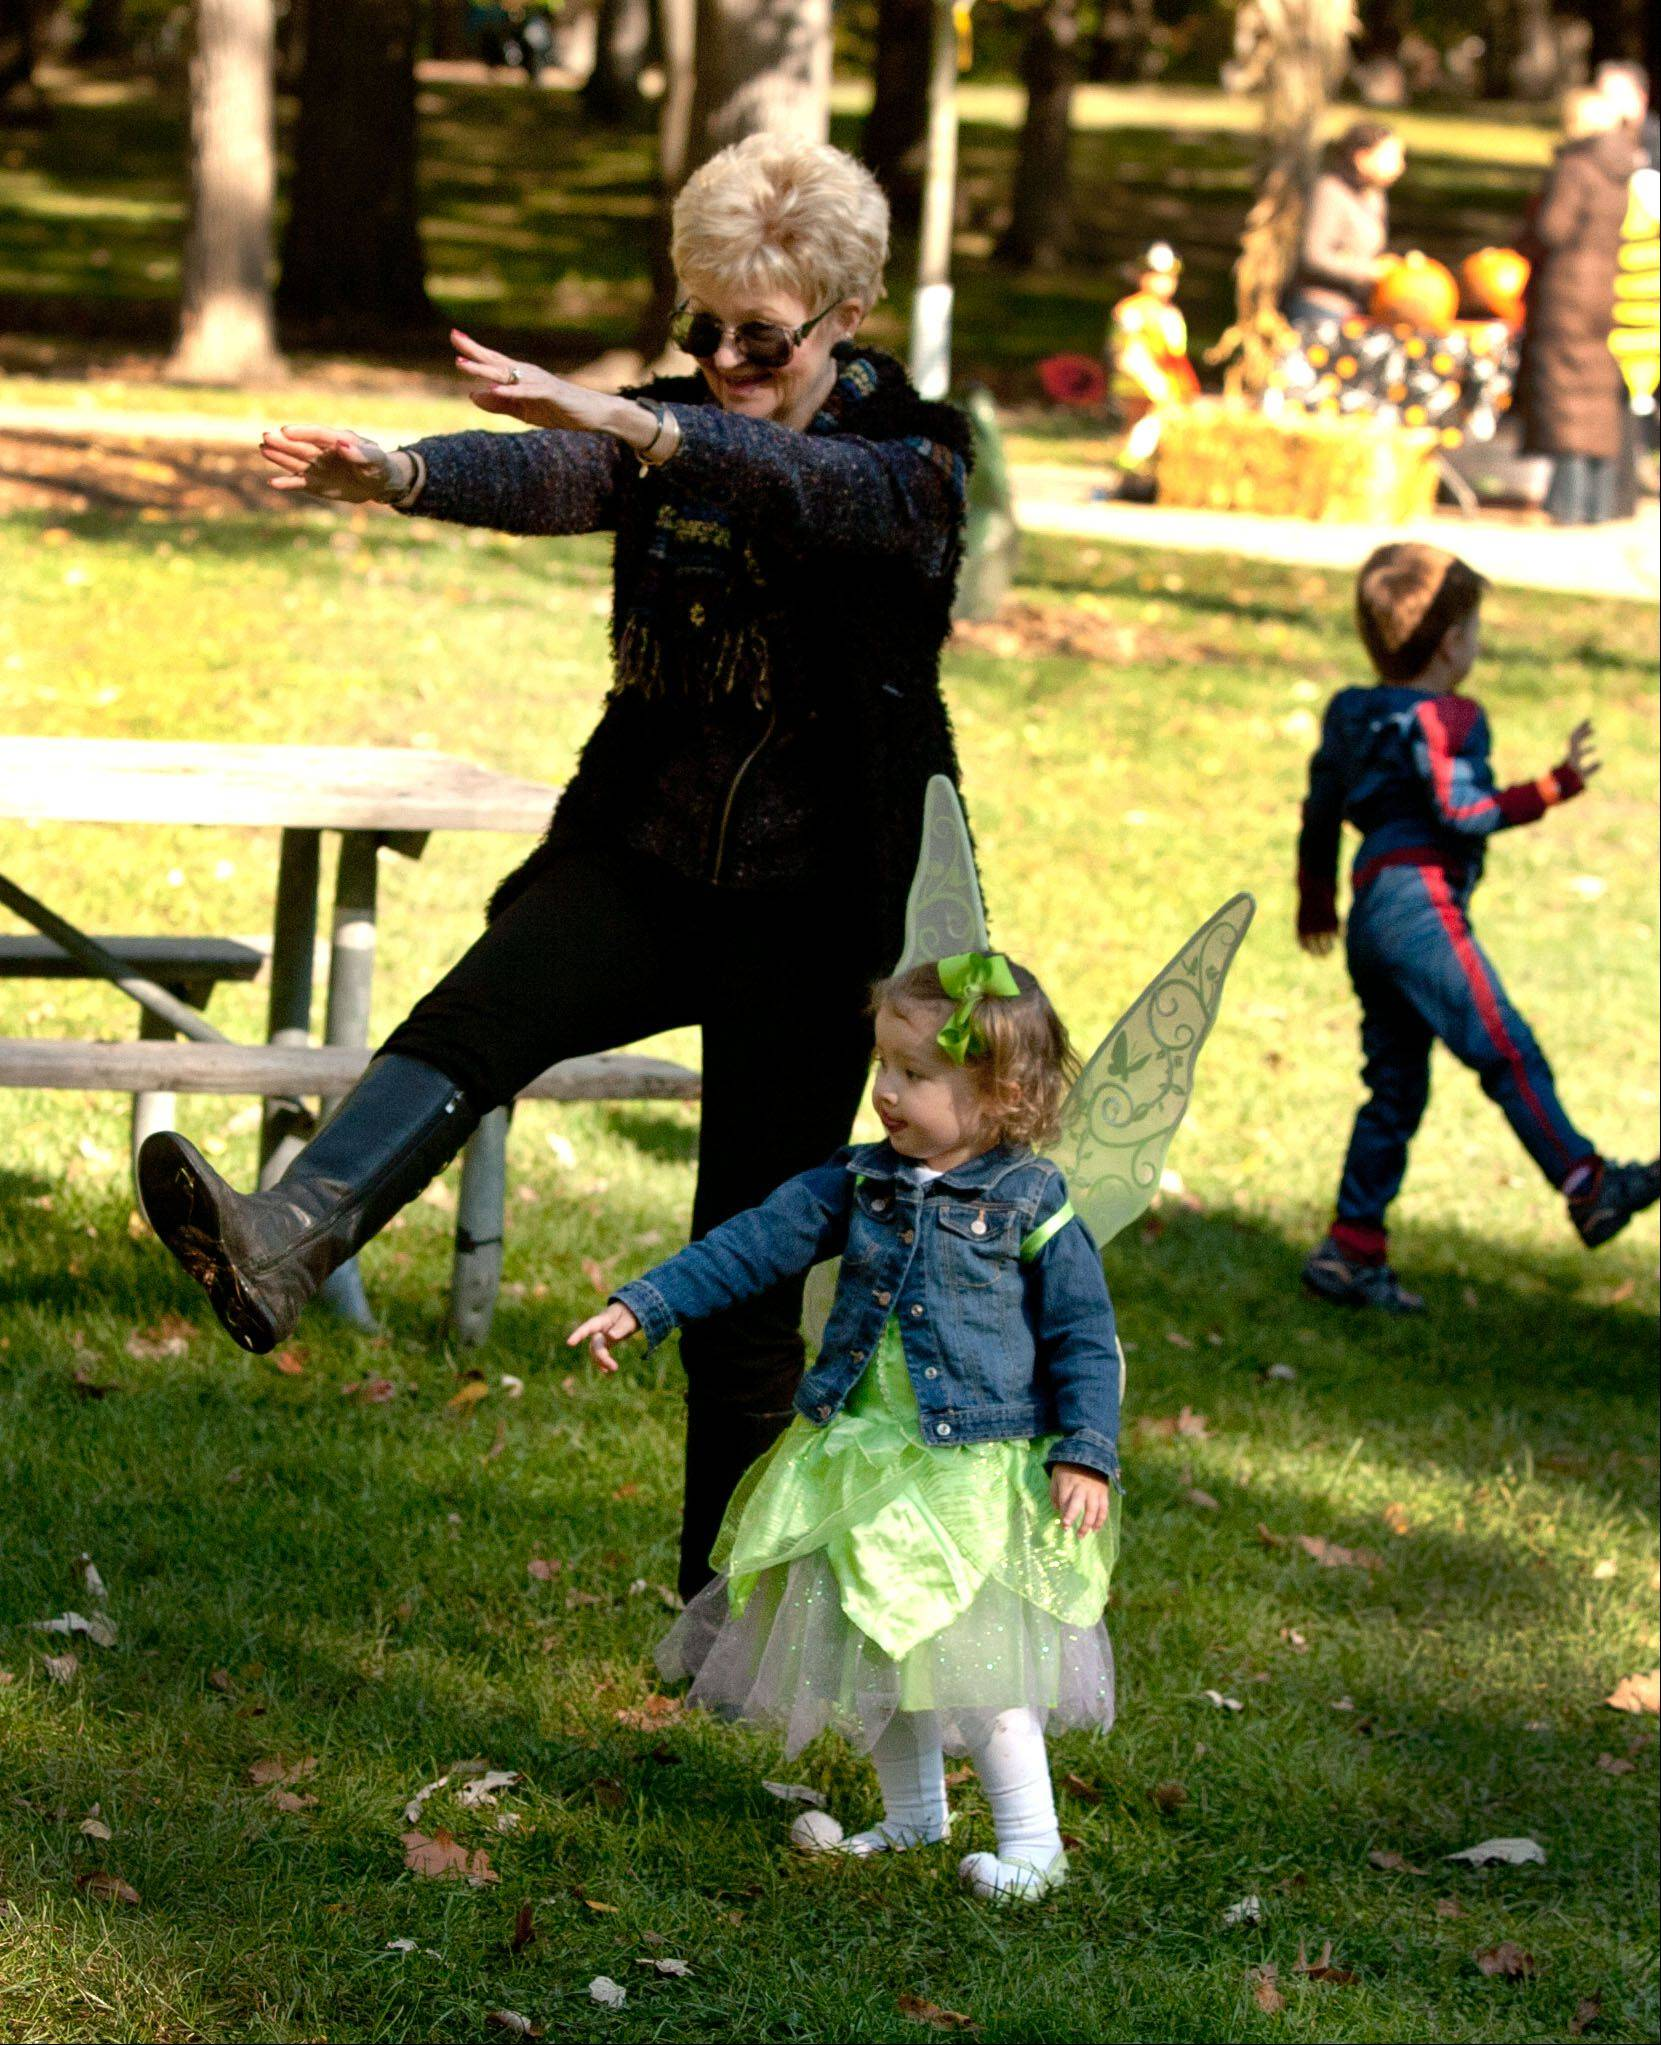 Susan Christensen, grandmother of Addison Dunne, 2, of Glen Ellyn, dance together during a Boo Bash at Lake Ellyn Park in Glen Ellyn.